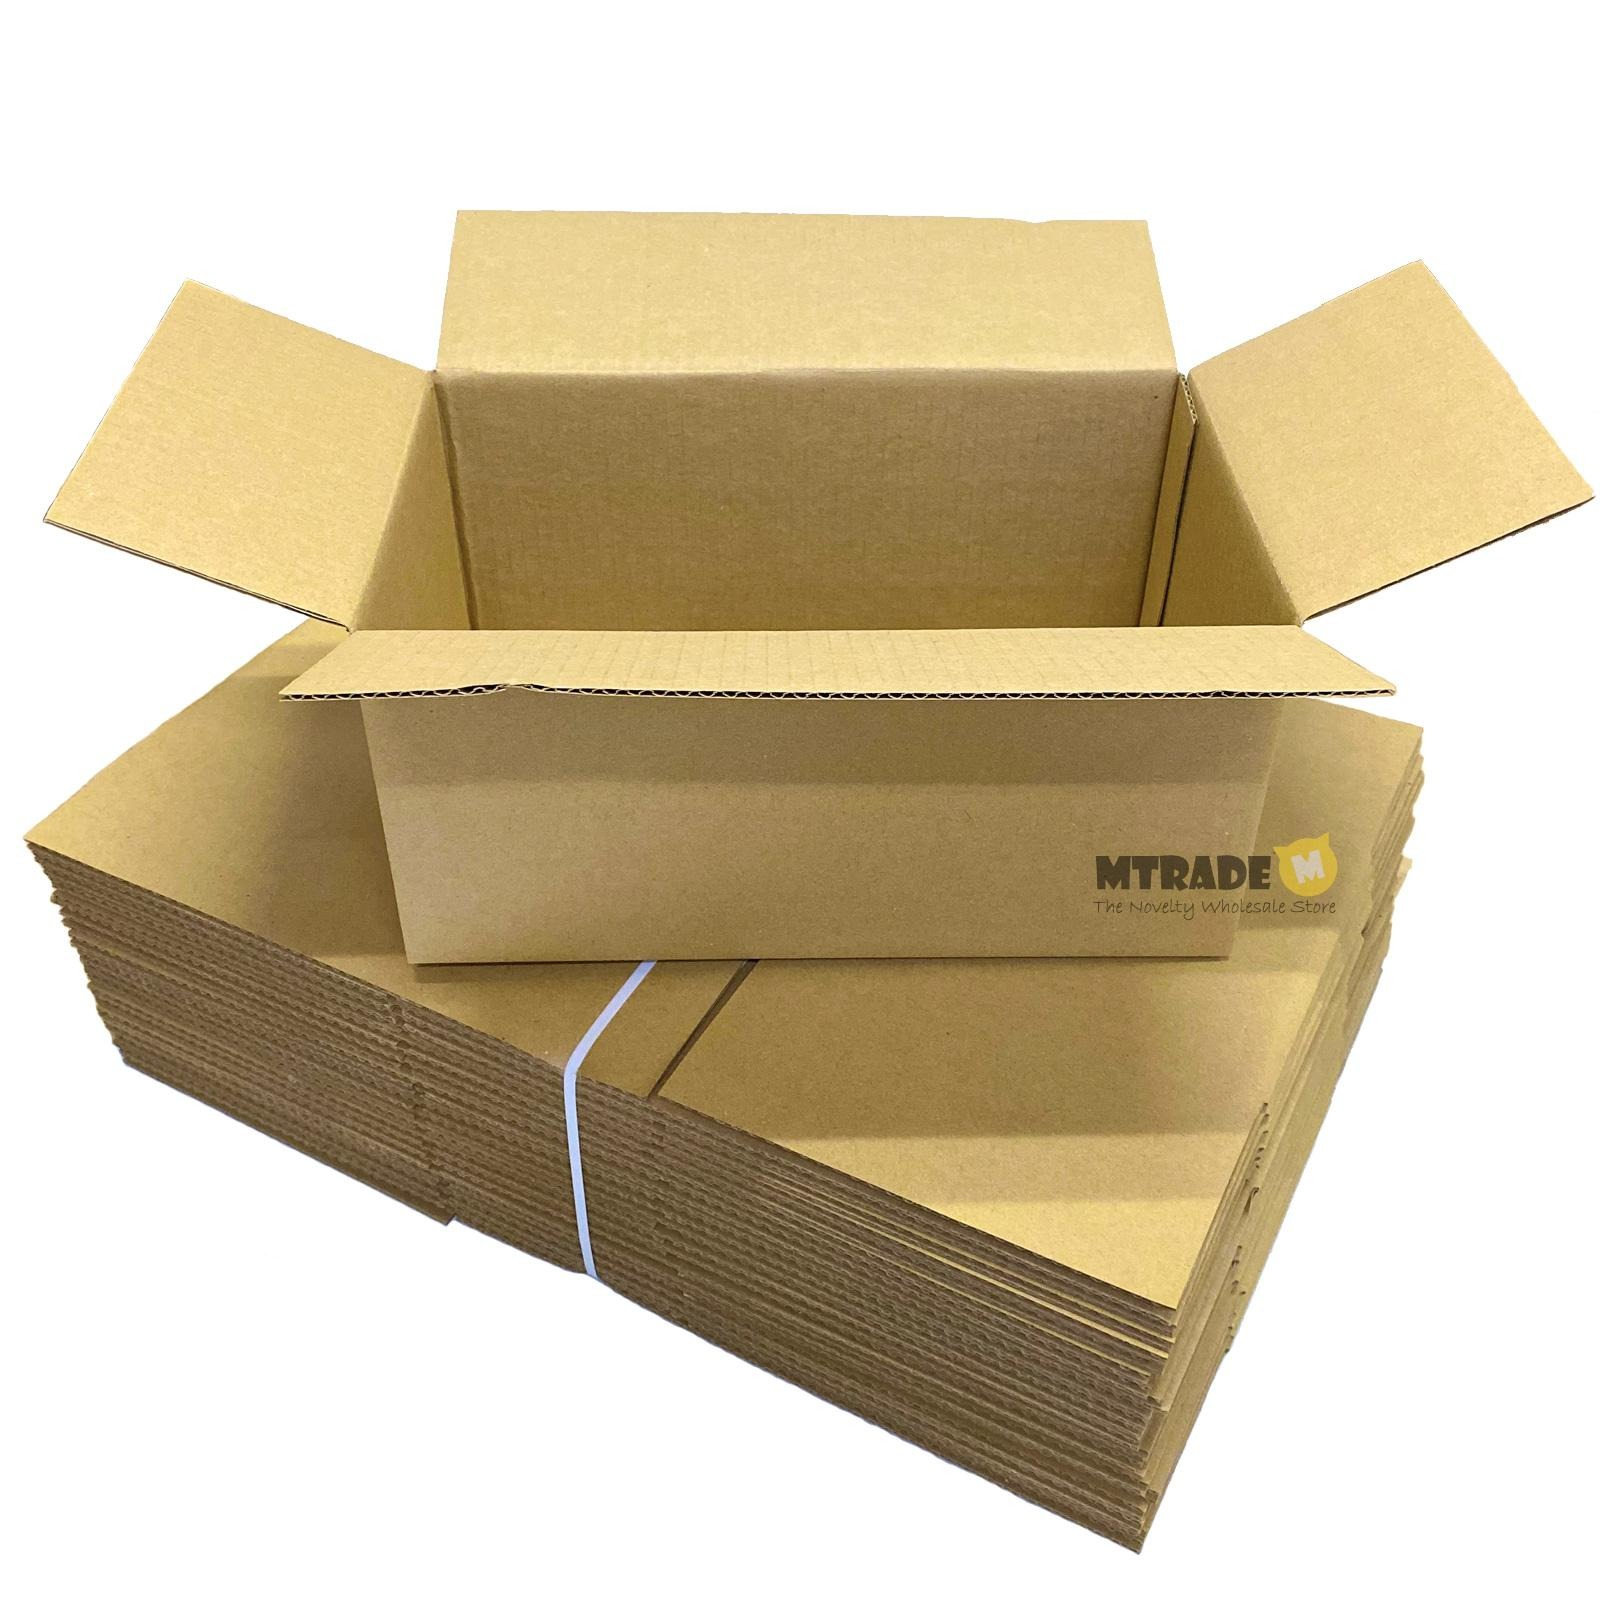 MTRADE Single Wall Carton Boxes (30.5 x 19 x 14.5cm)